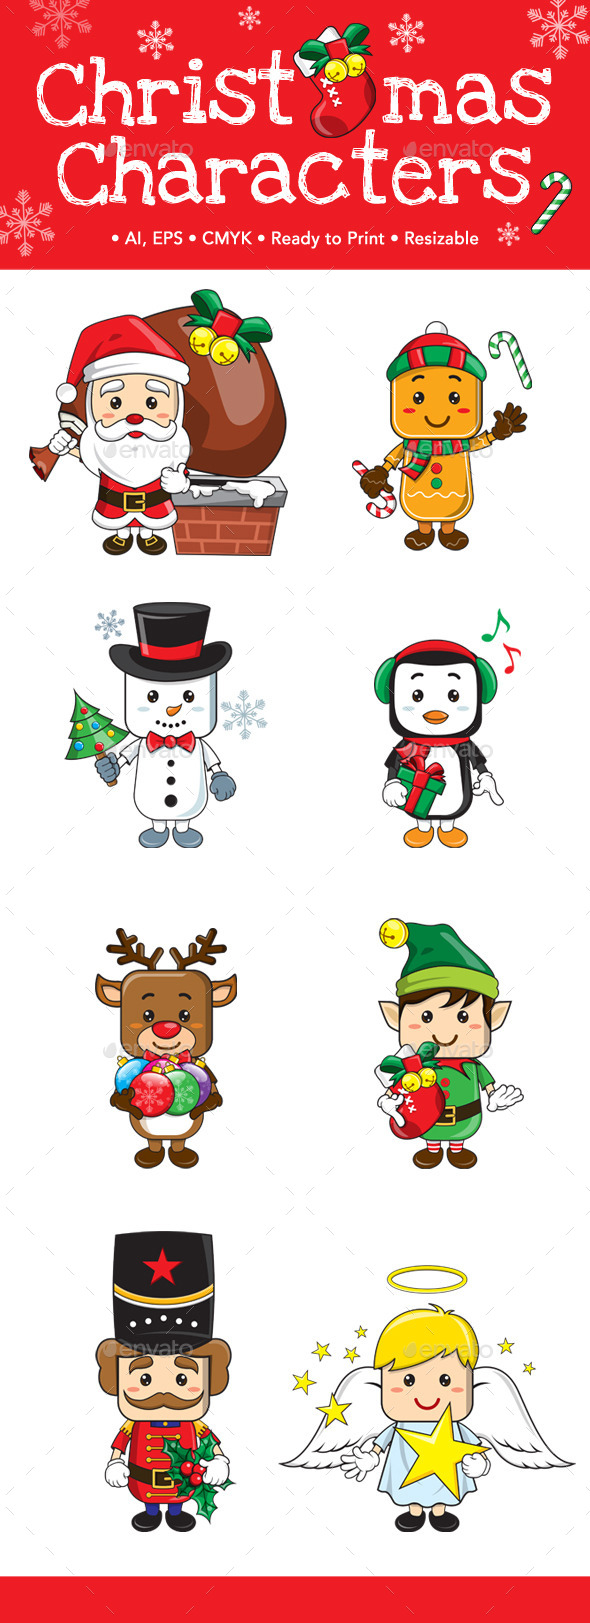 Christmas Characters - Miscellaneous Characters